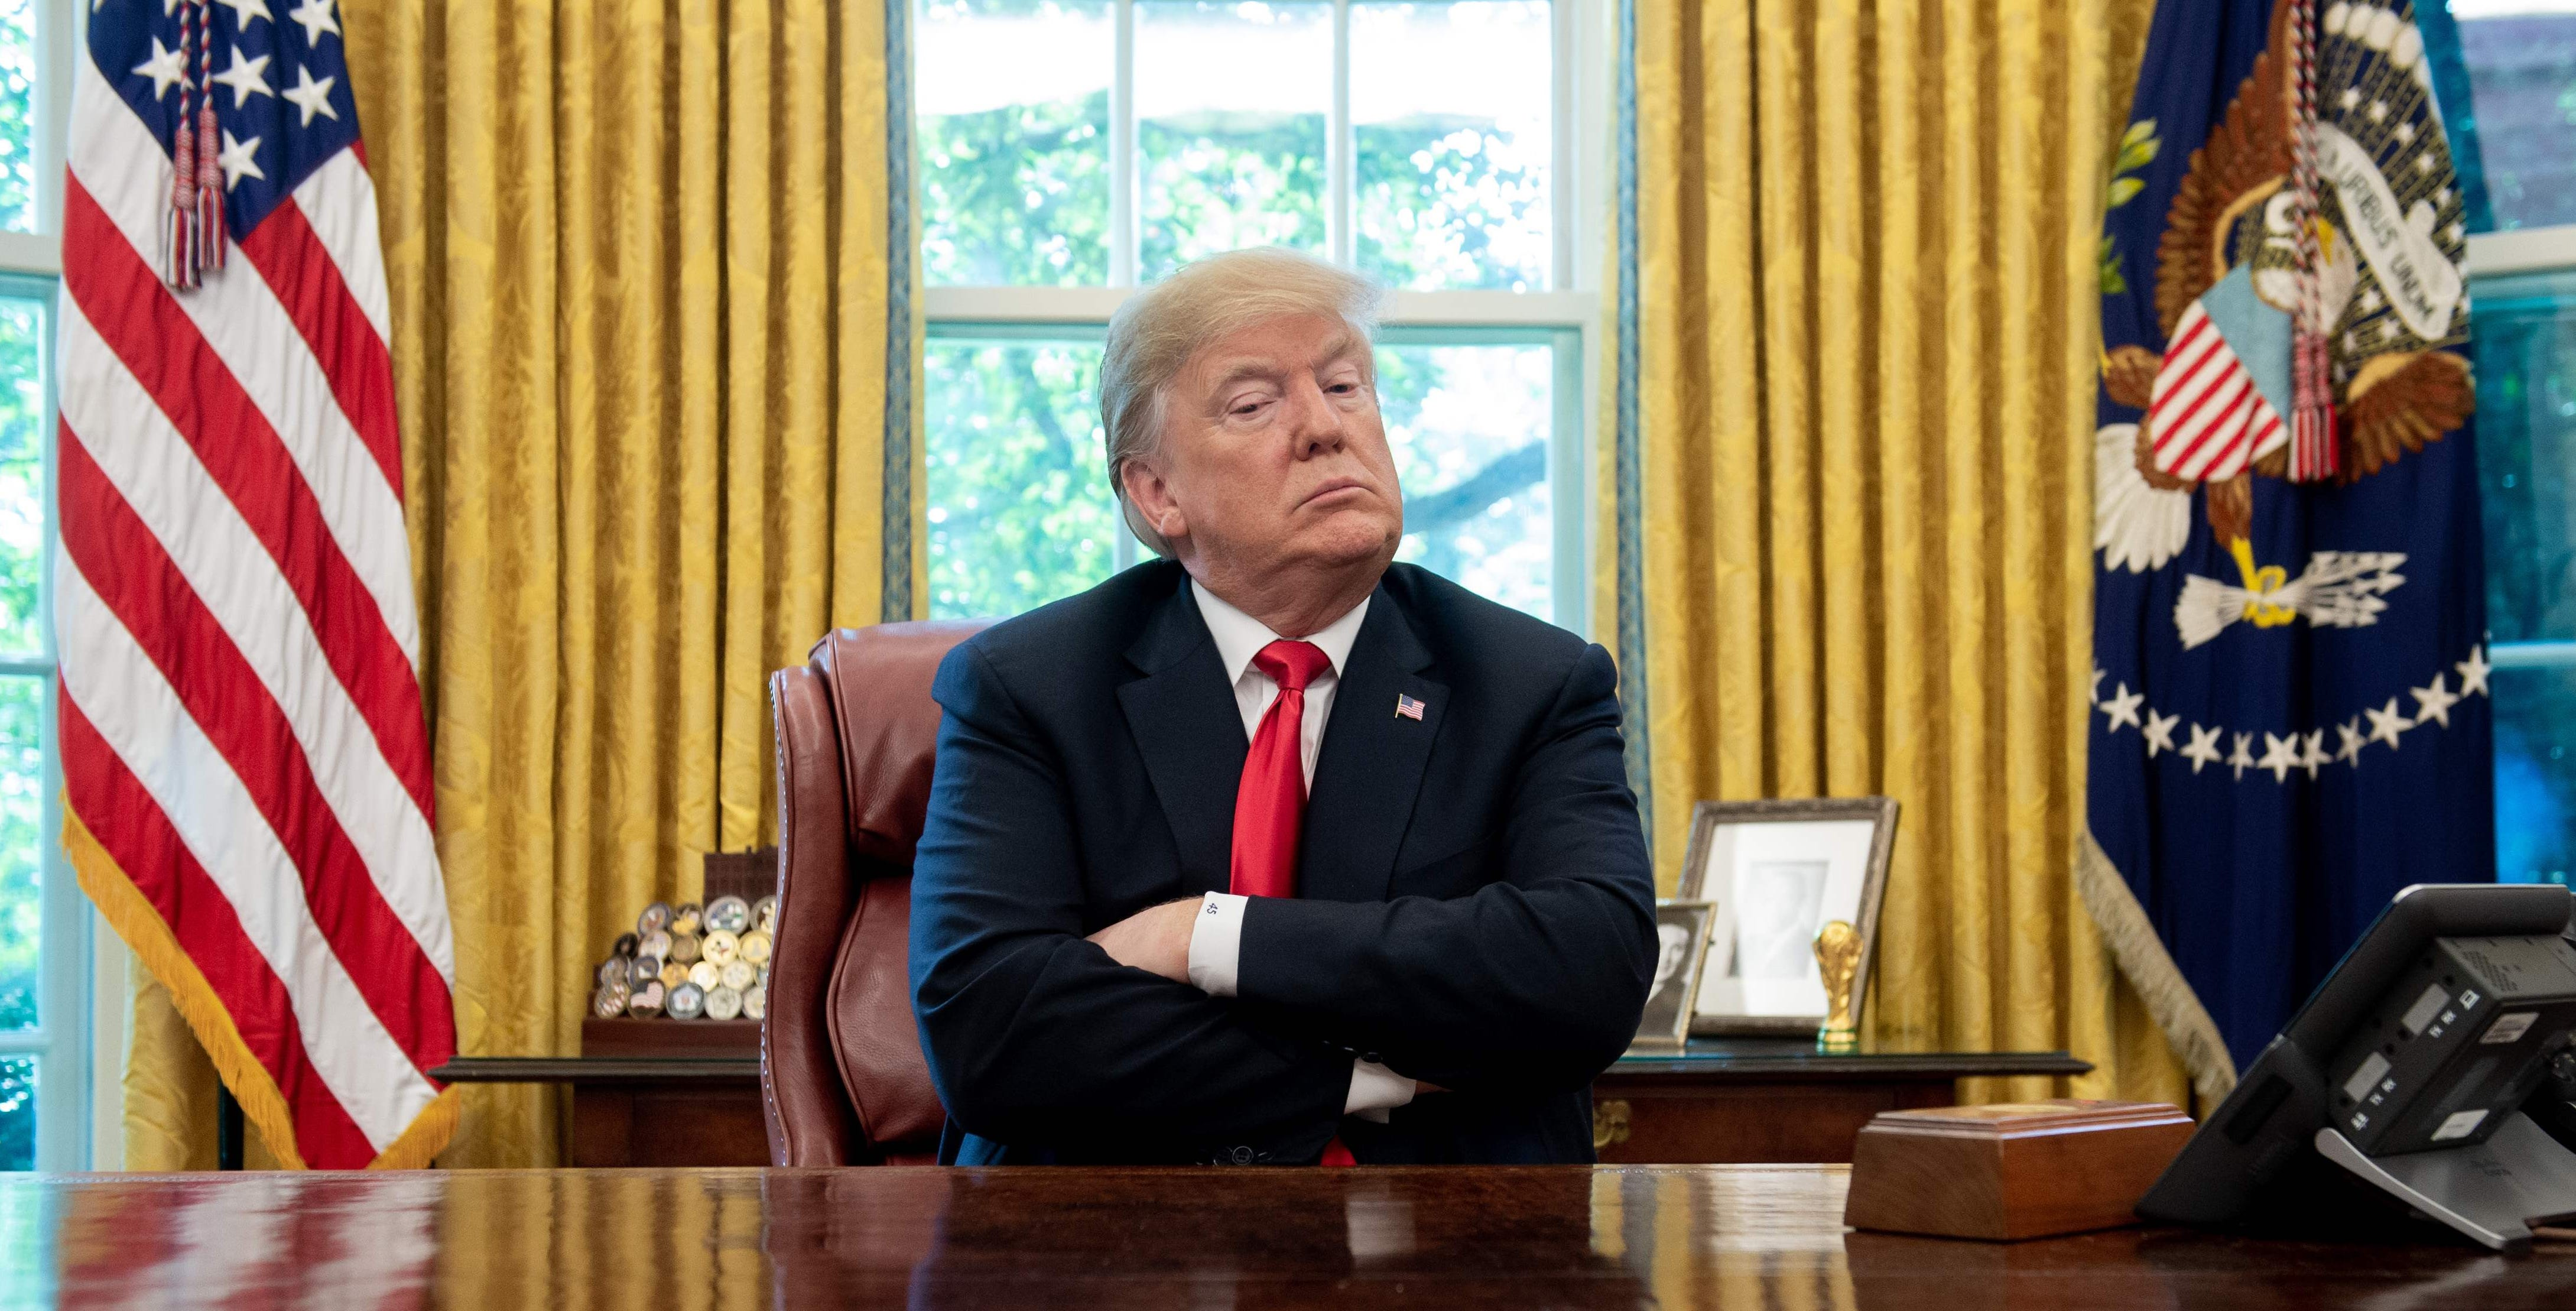 President Donald Trump speaks during a briefing on Hurricane Michael in the Oval Office of the White House in Washington, on Oct. 10, 2018.